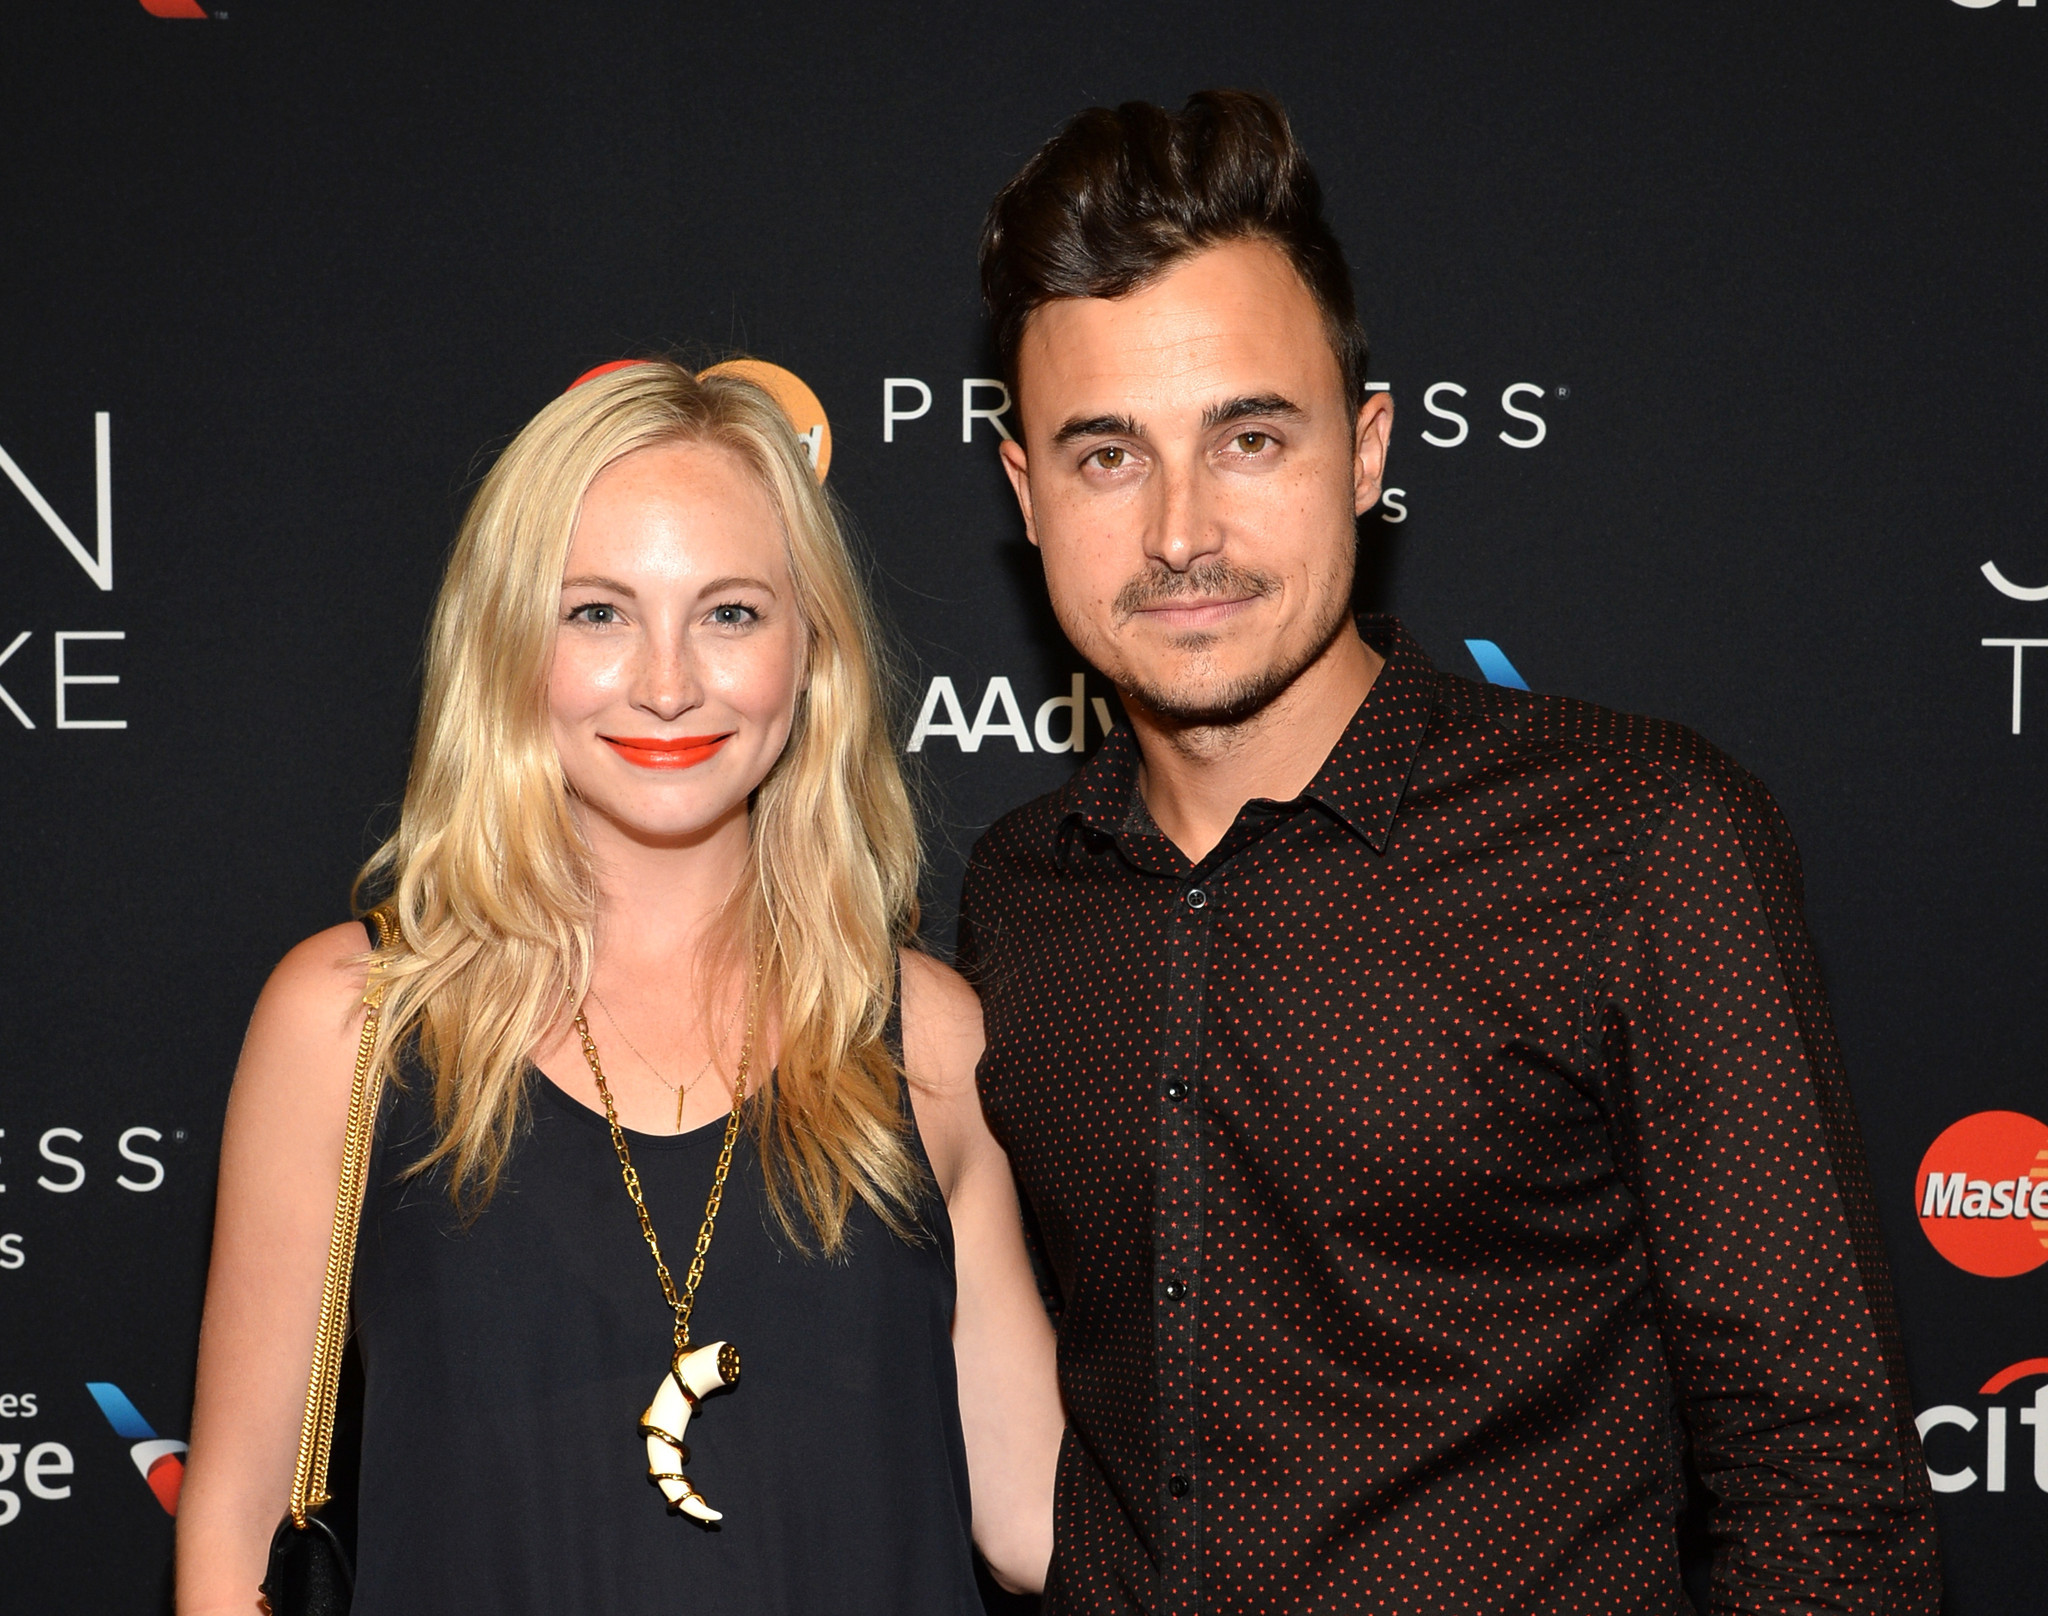 candice accola dating joe king Candice accola v san diegu v roce 2015 joe king (2014-) dating rules from my future self: chloe cunningham: 6 dílů.